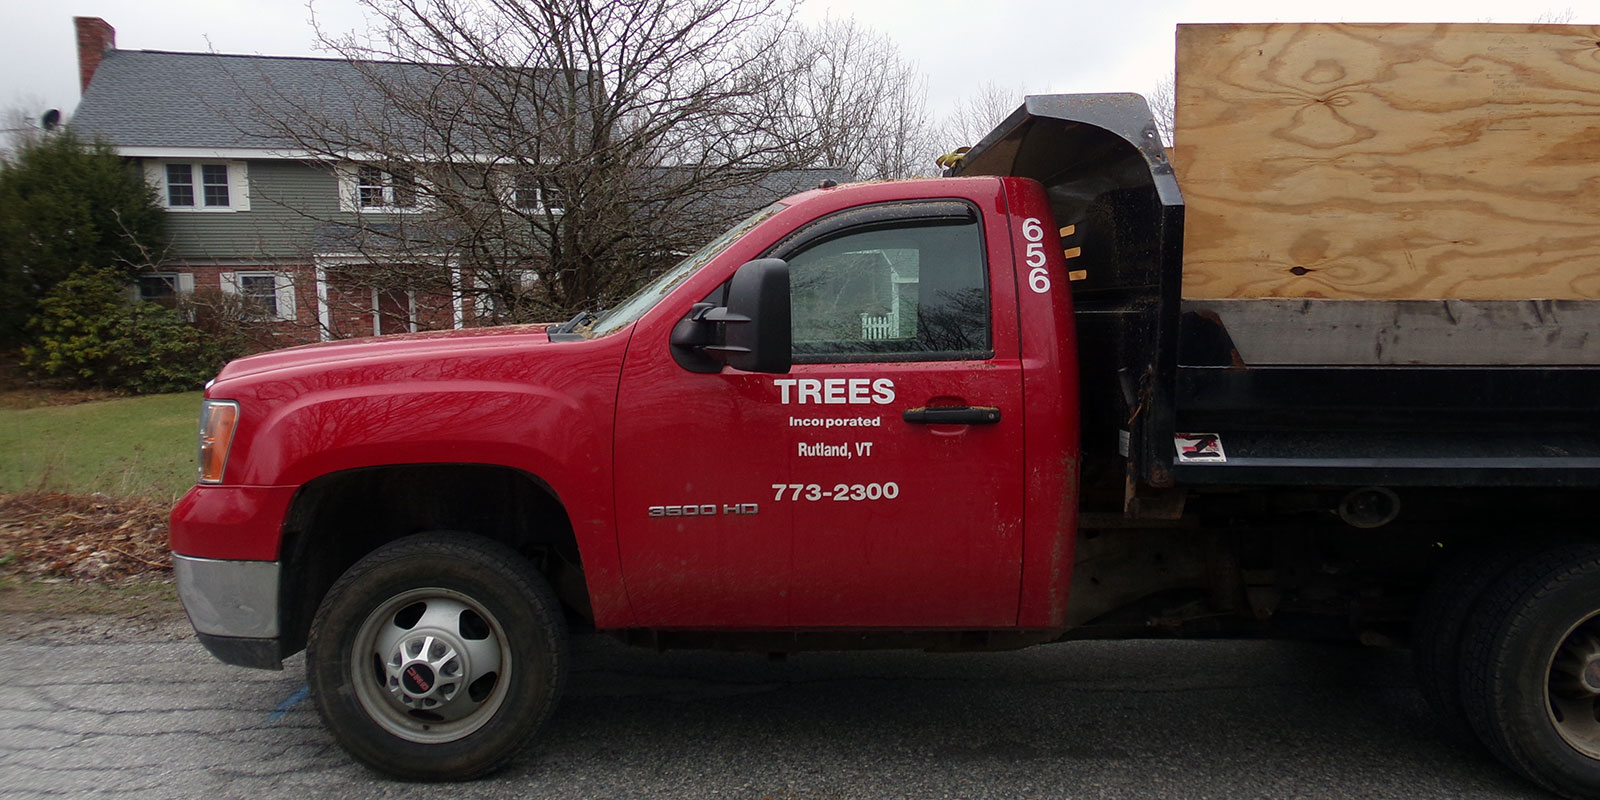 Trees Incorporated truck Rutland VT